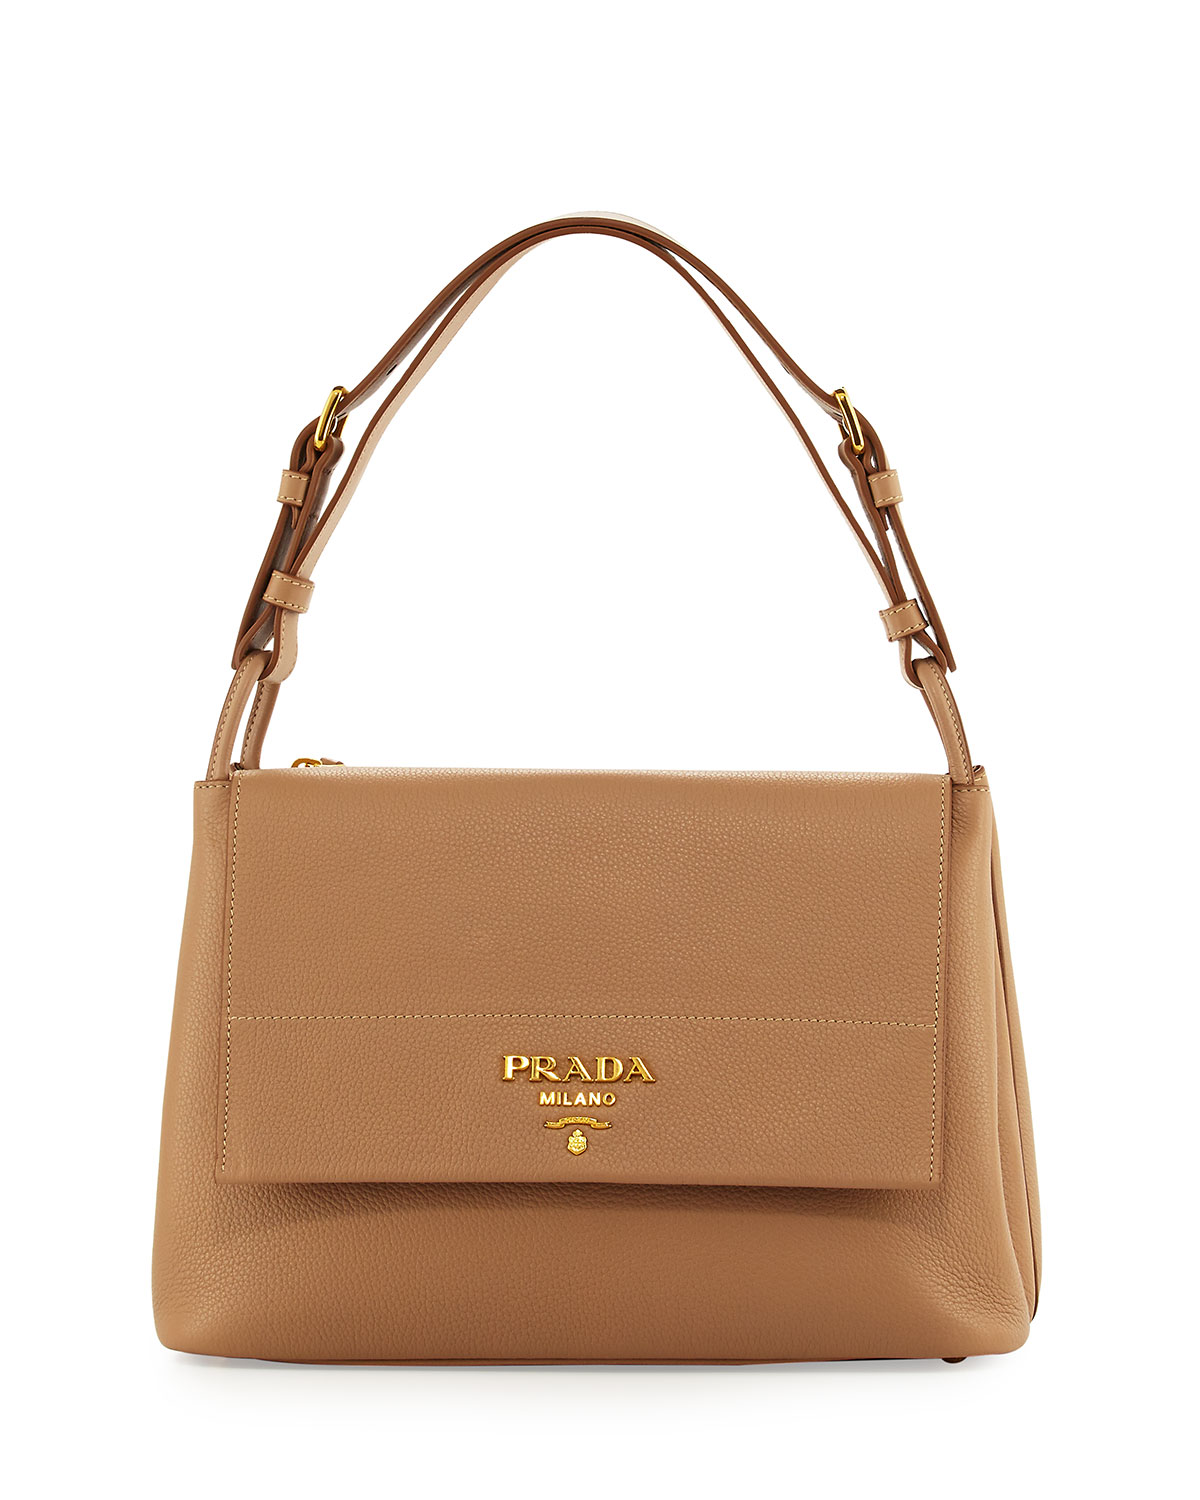 437614d1dd651 Prada Vitello Daino Shoulder Bag